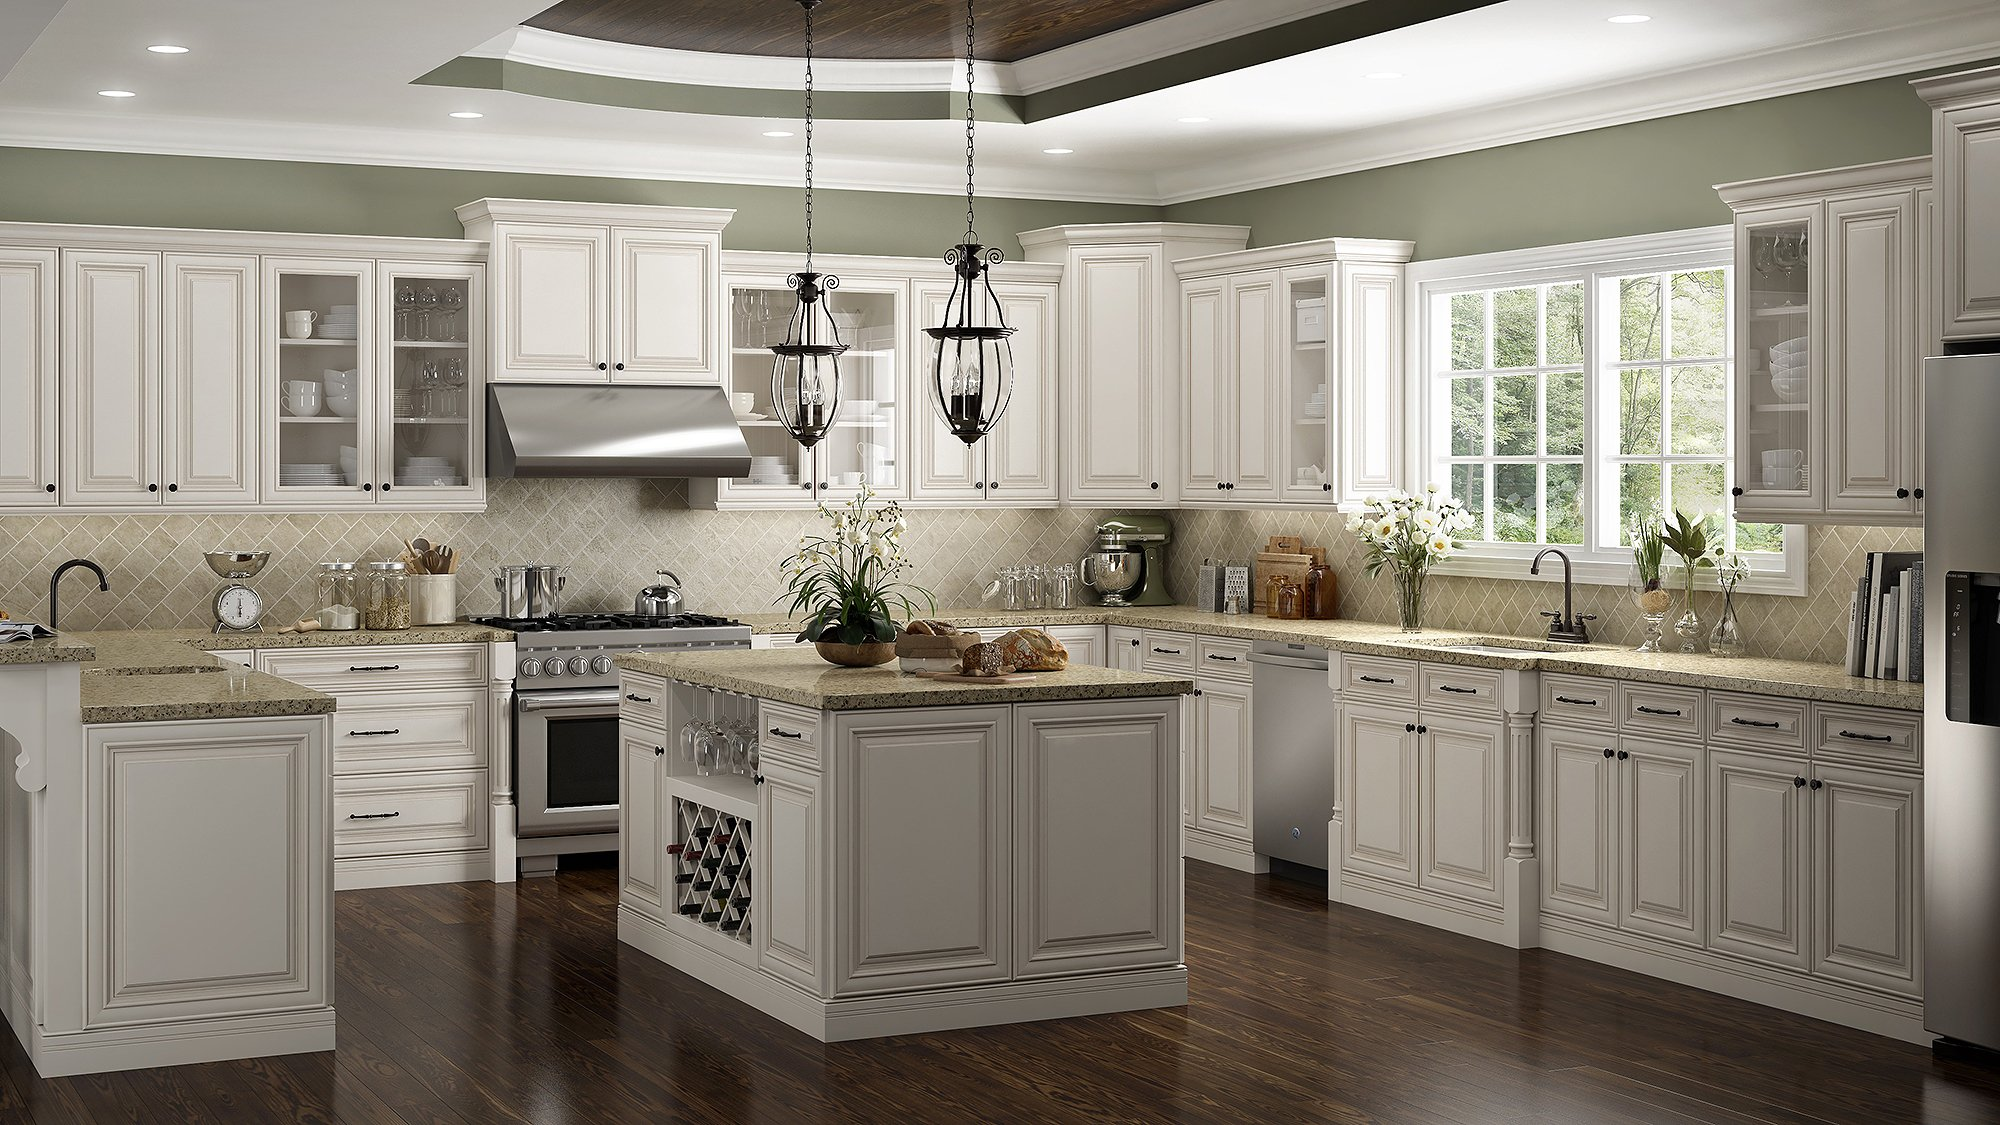 Castleberry Antique White Kitchen